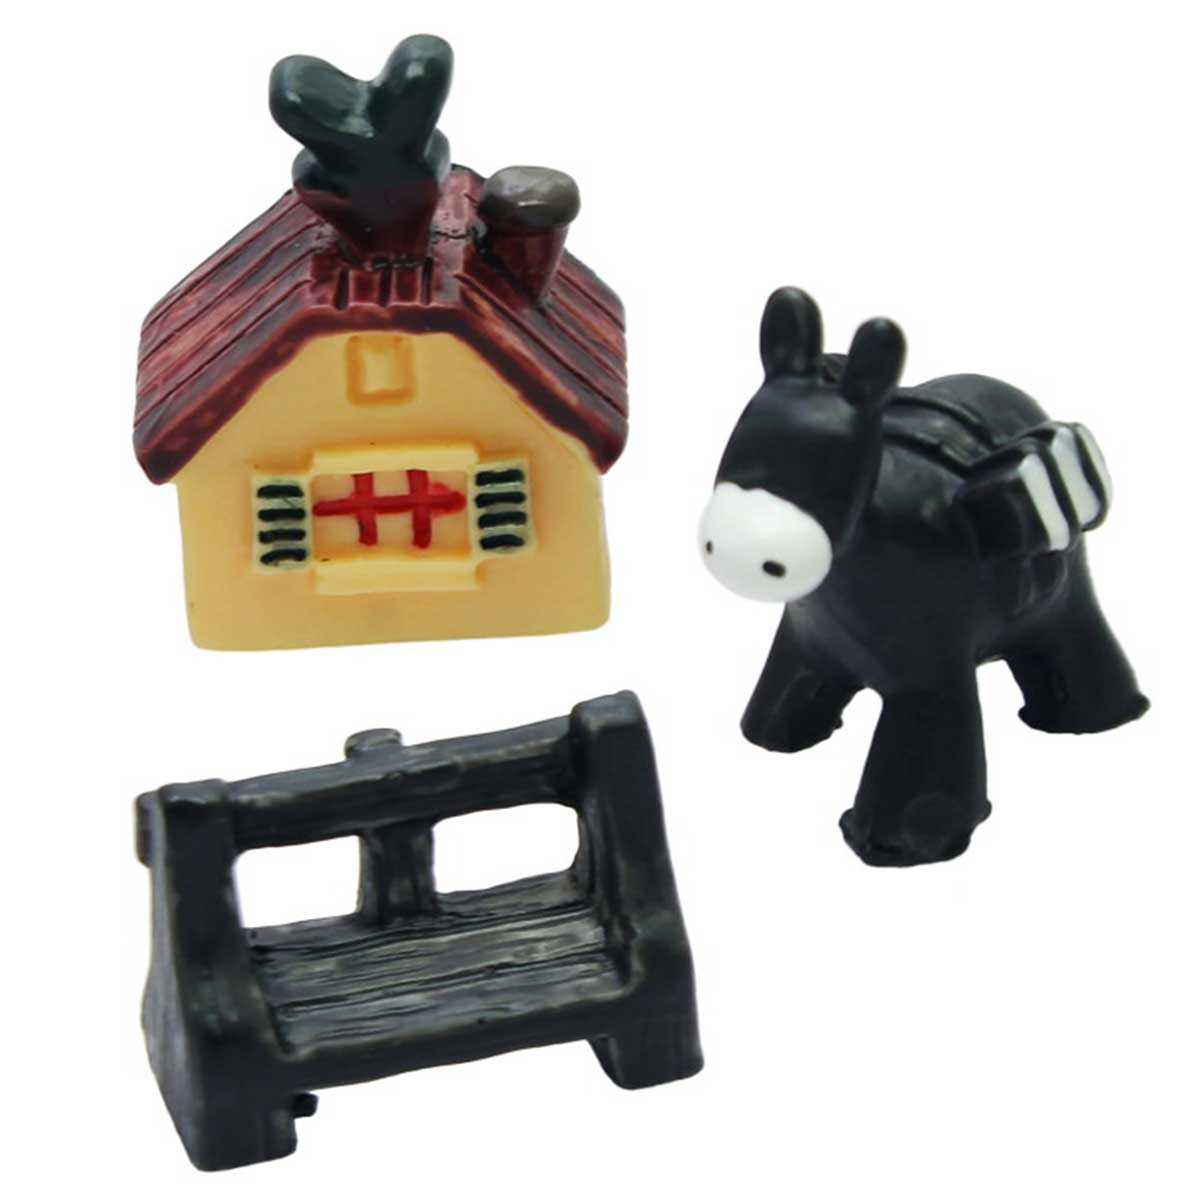 Miniature House Donkey And Bench Set